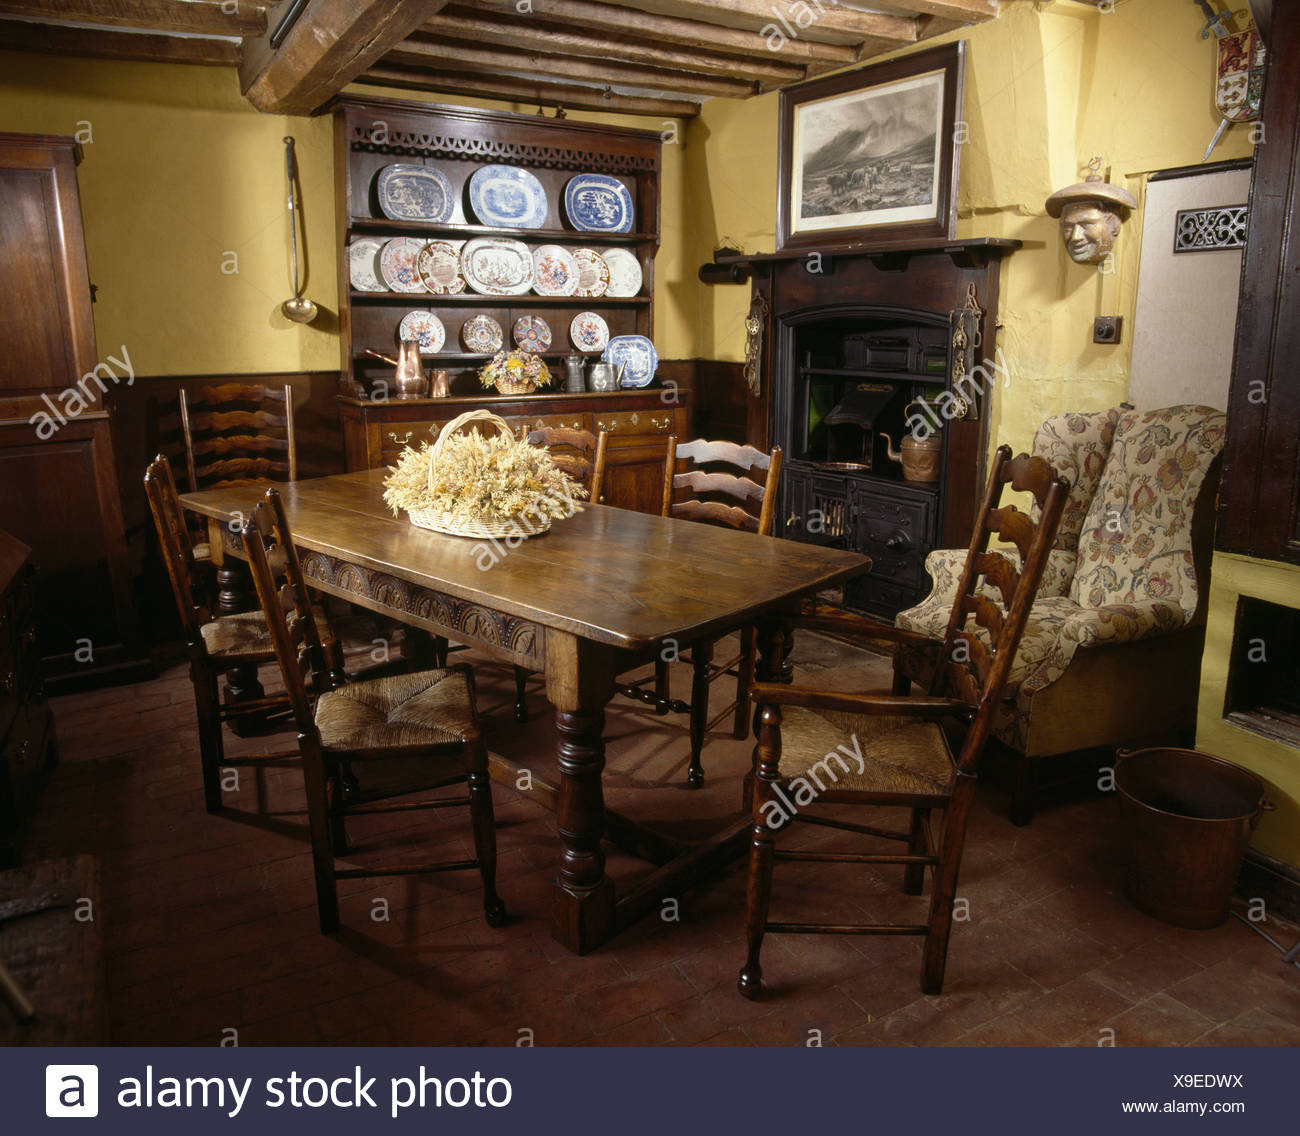 Attirant Antique Table And Rush Seated Chairs In Pale Yellow Country Diningroom With  Fireplace And Beamed Ceiling